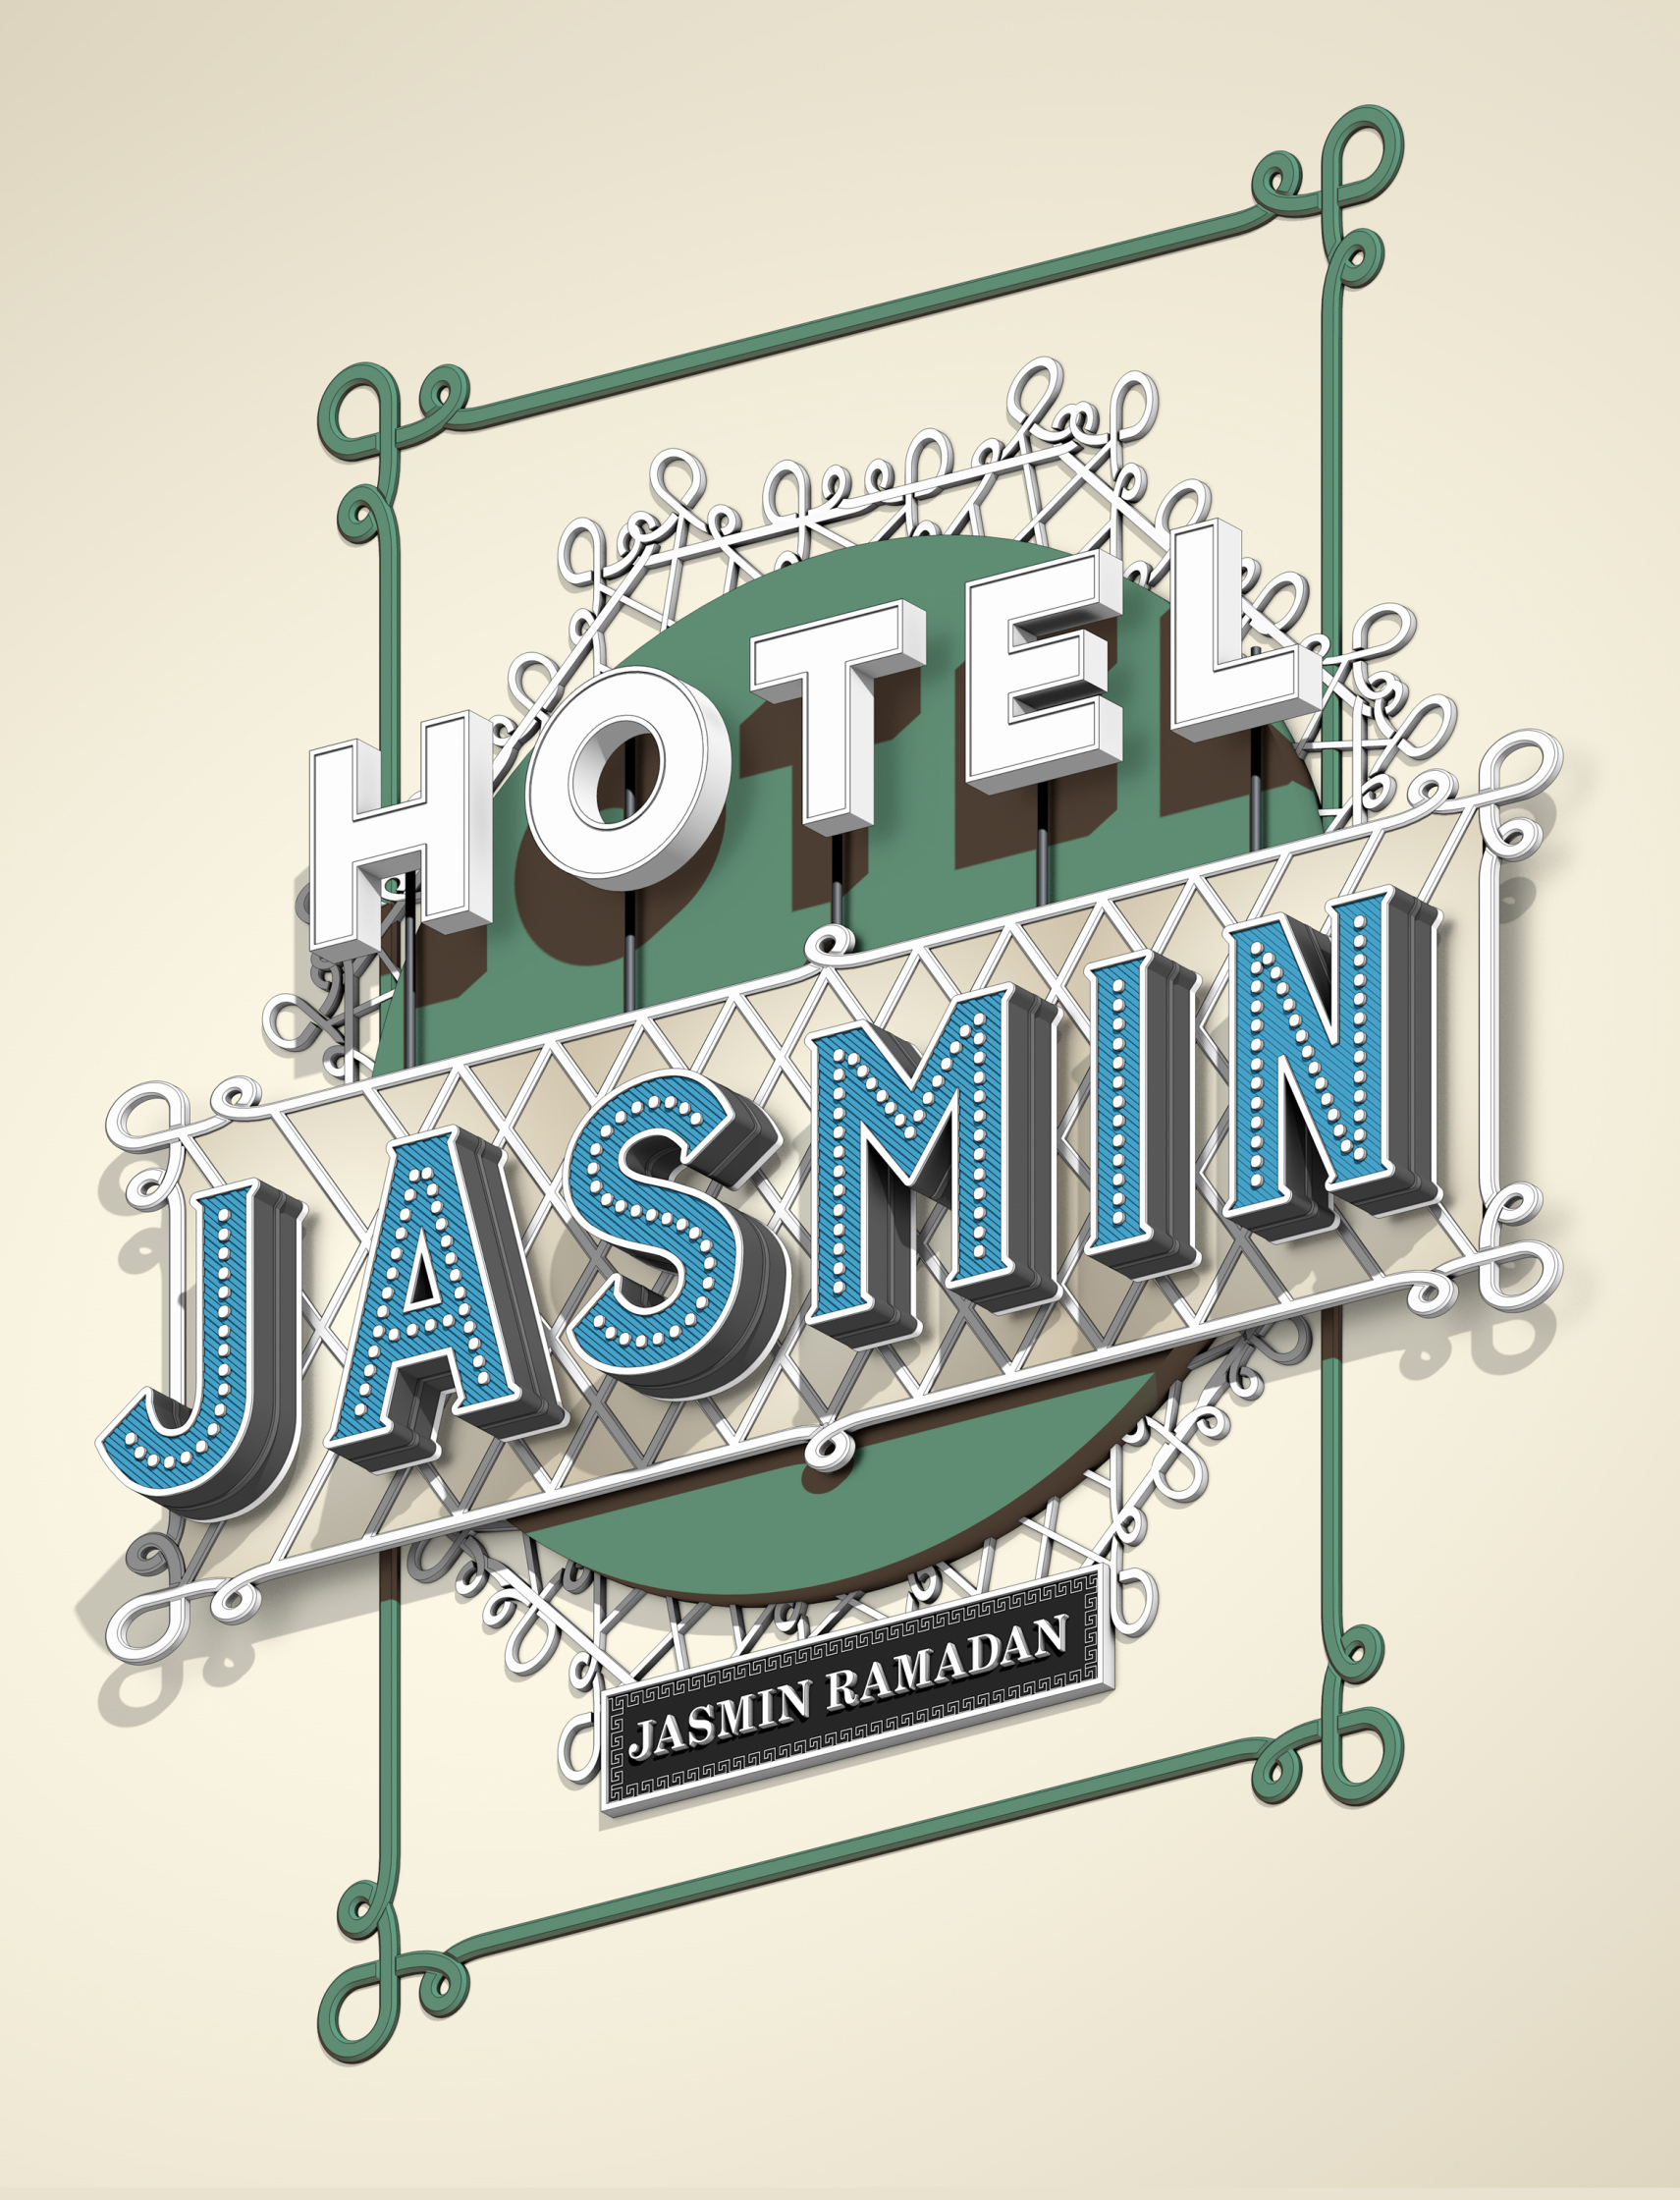 hoteljasmin book cover.jpg